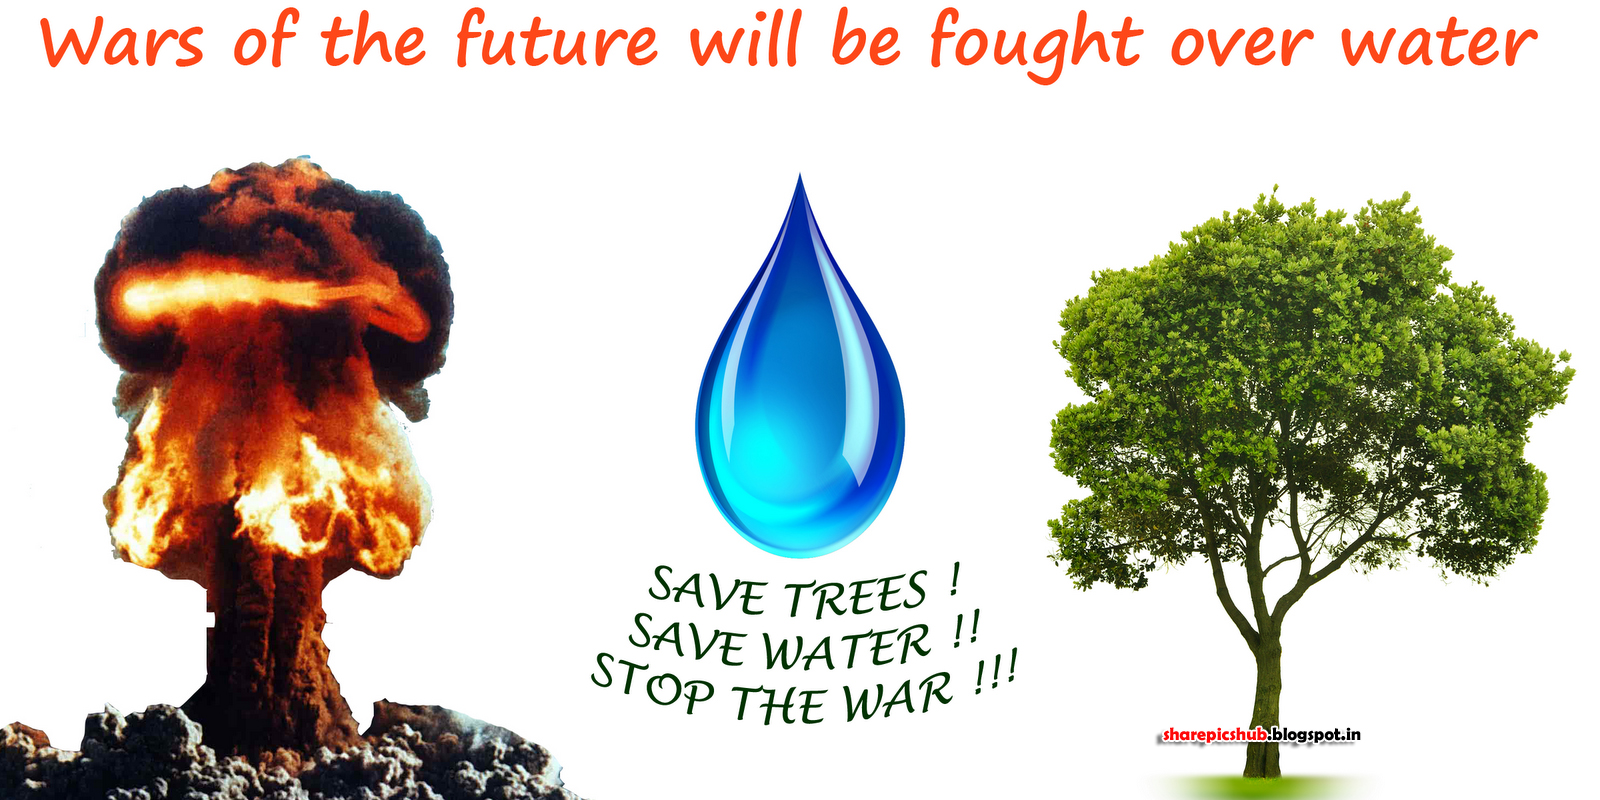 Five slogans to save water